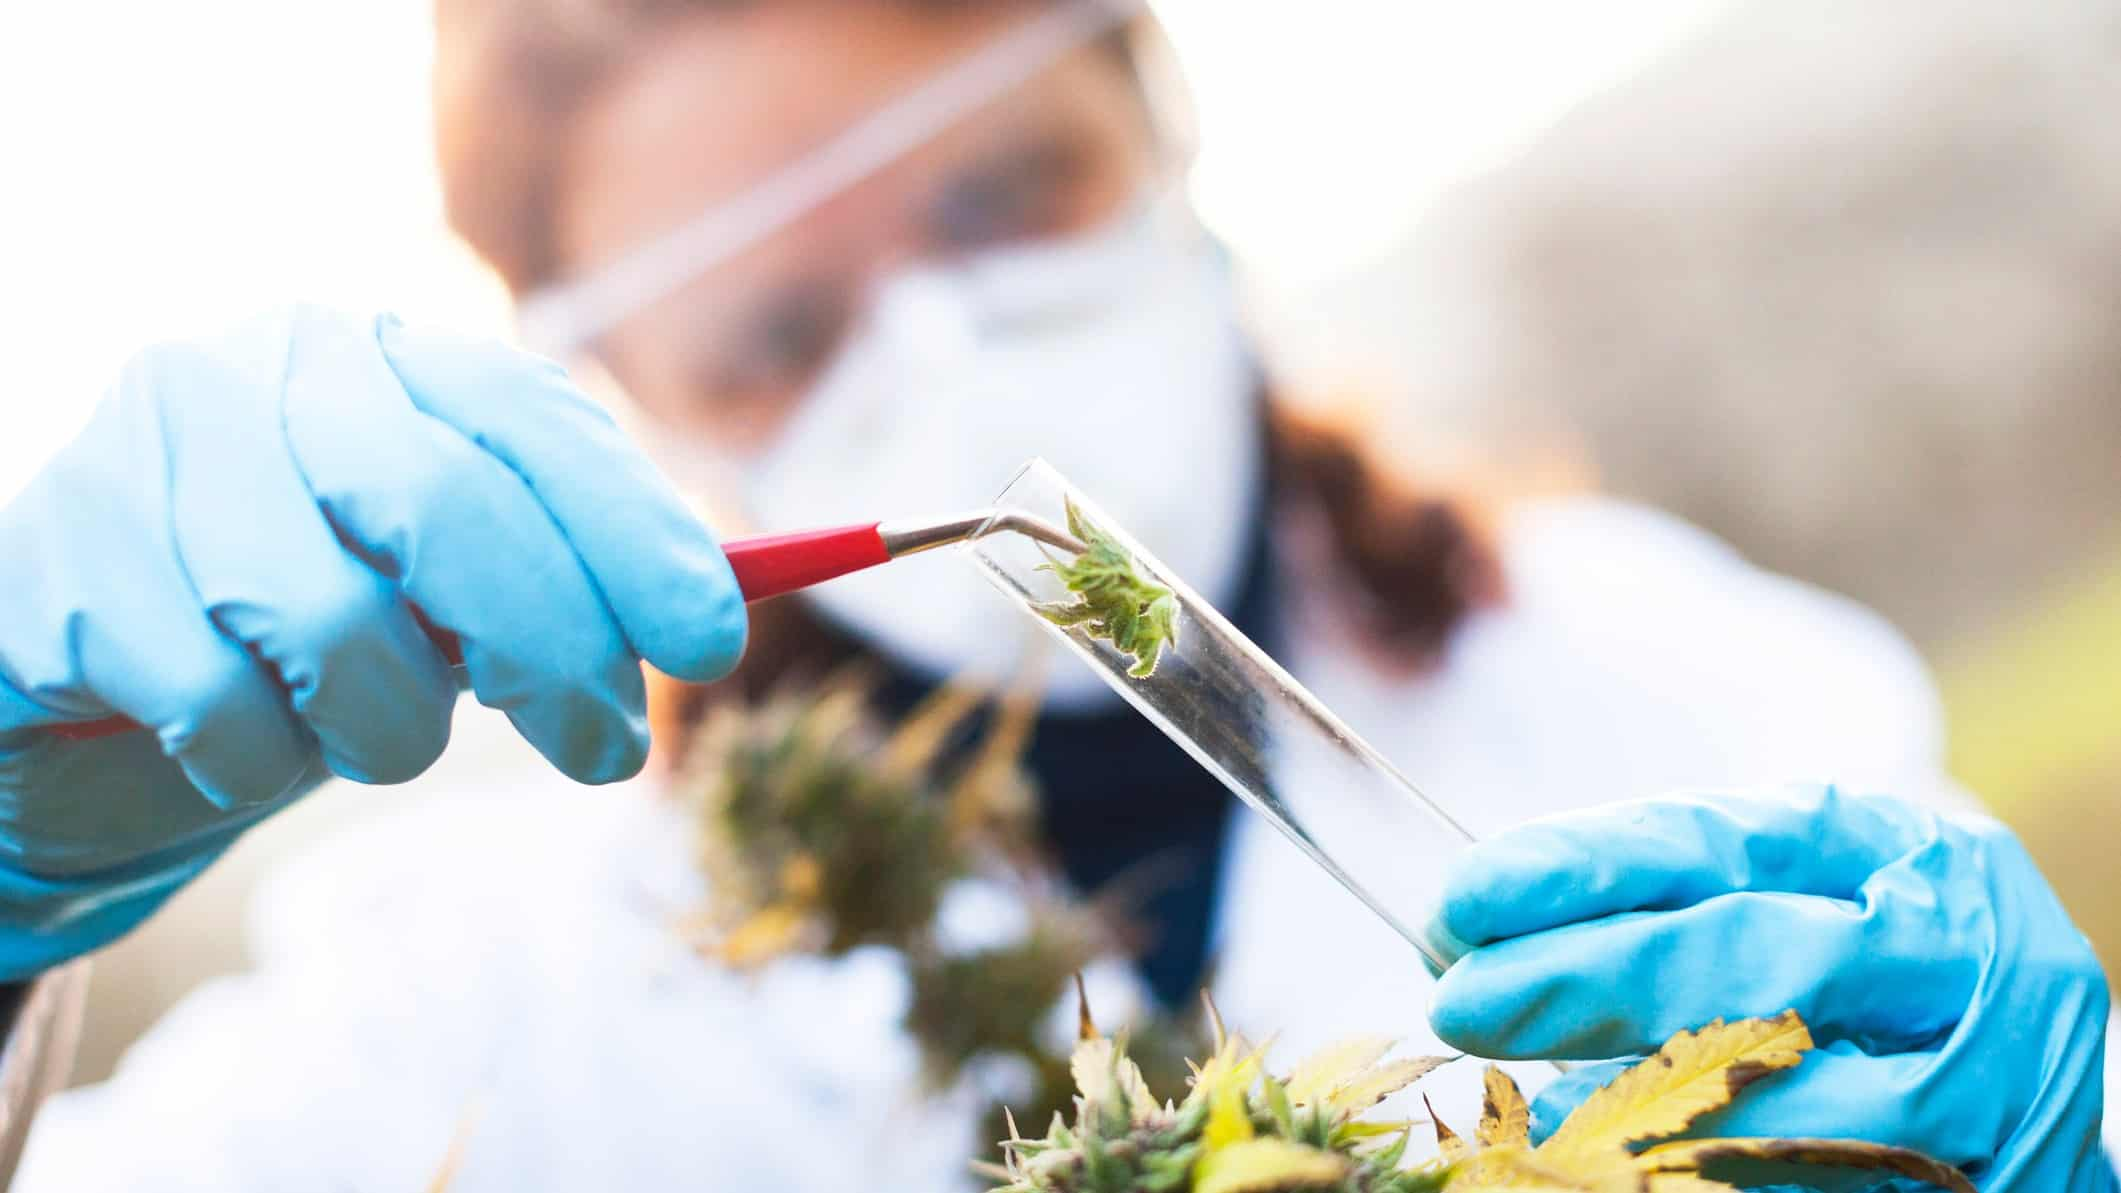 a medical researcher places a cannabis plant bud into a test tube. She is wearing a white lab coat and protective equipment, including a mask, over her face and is in an outdoor setting.